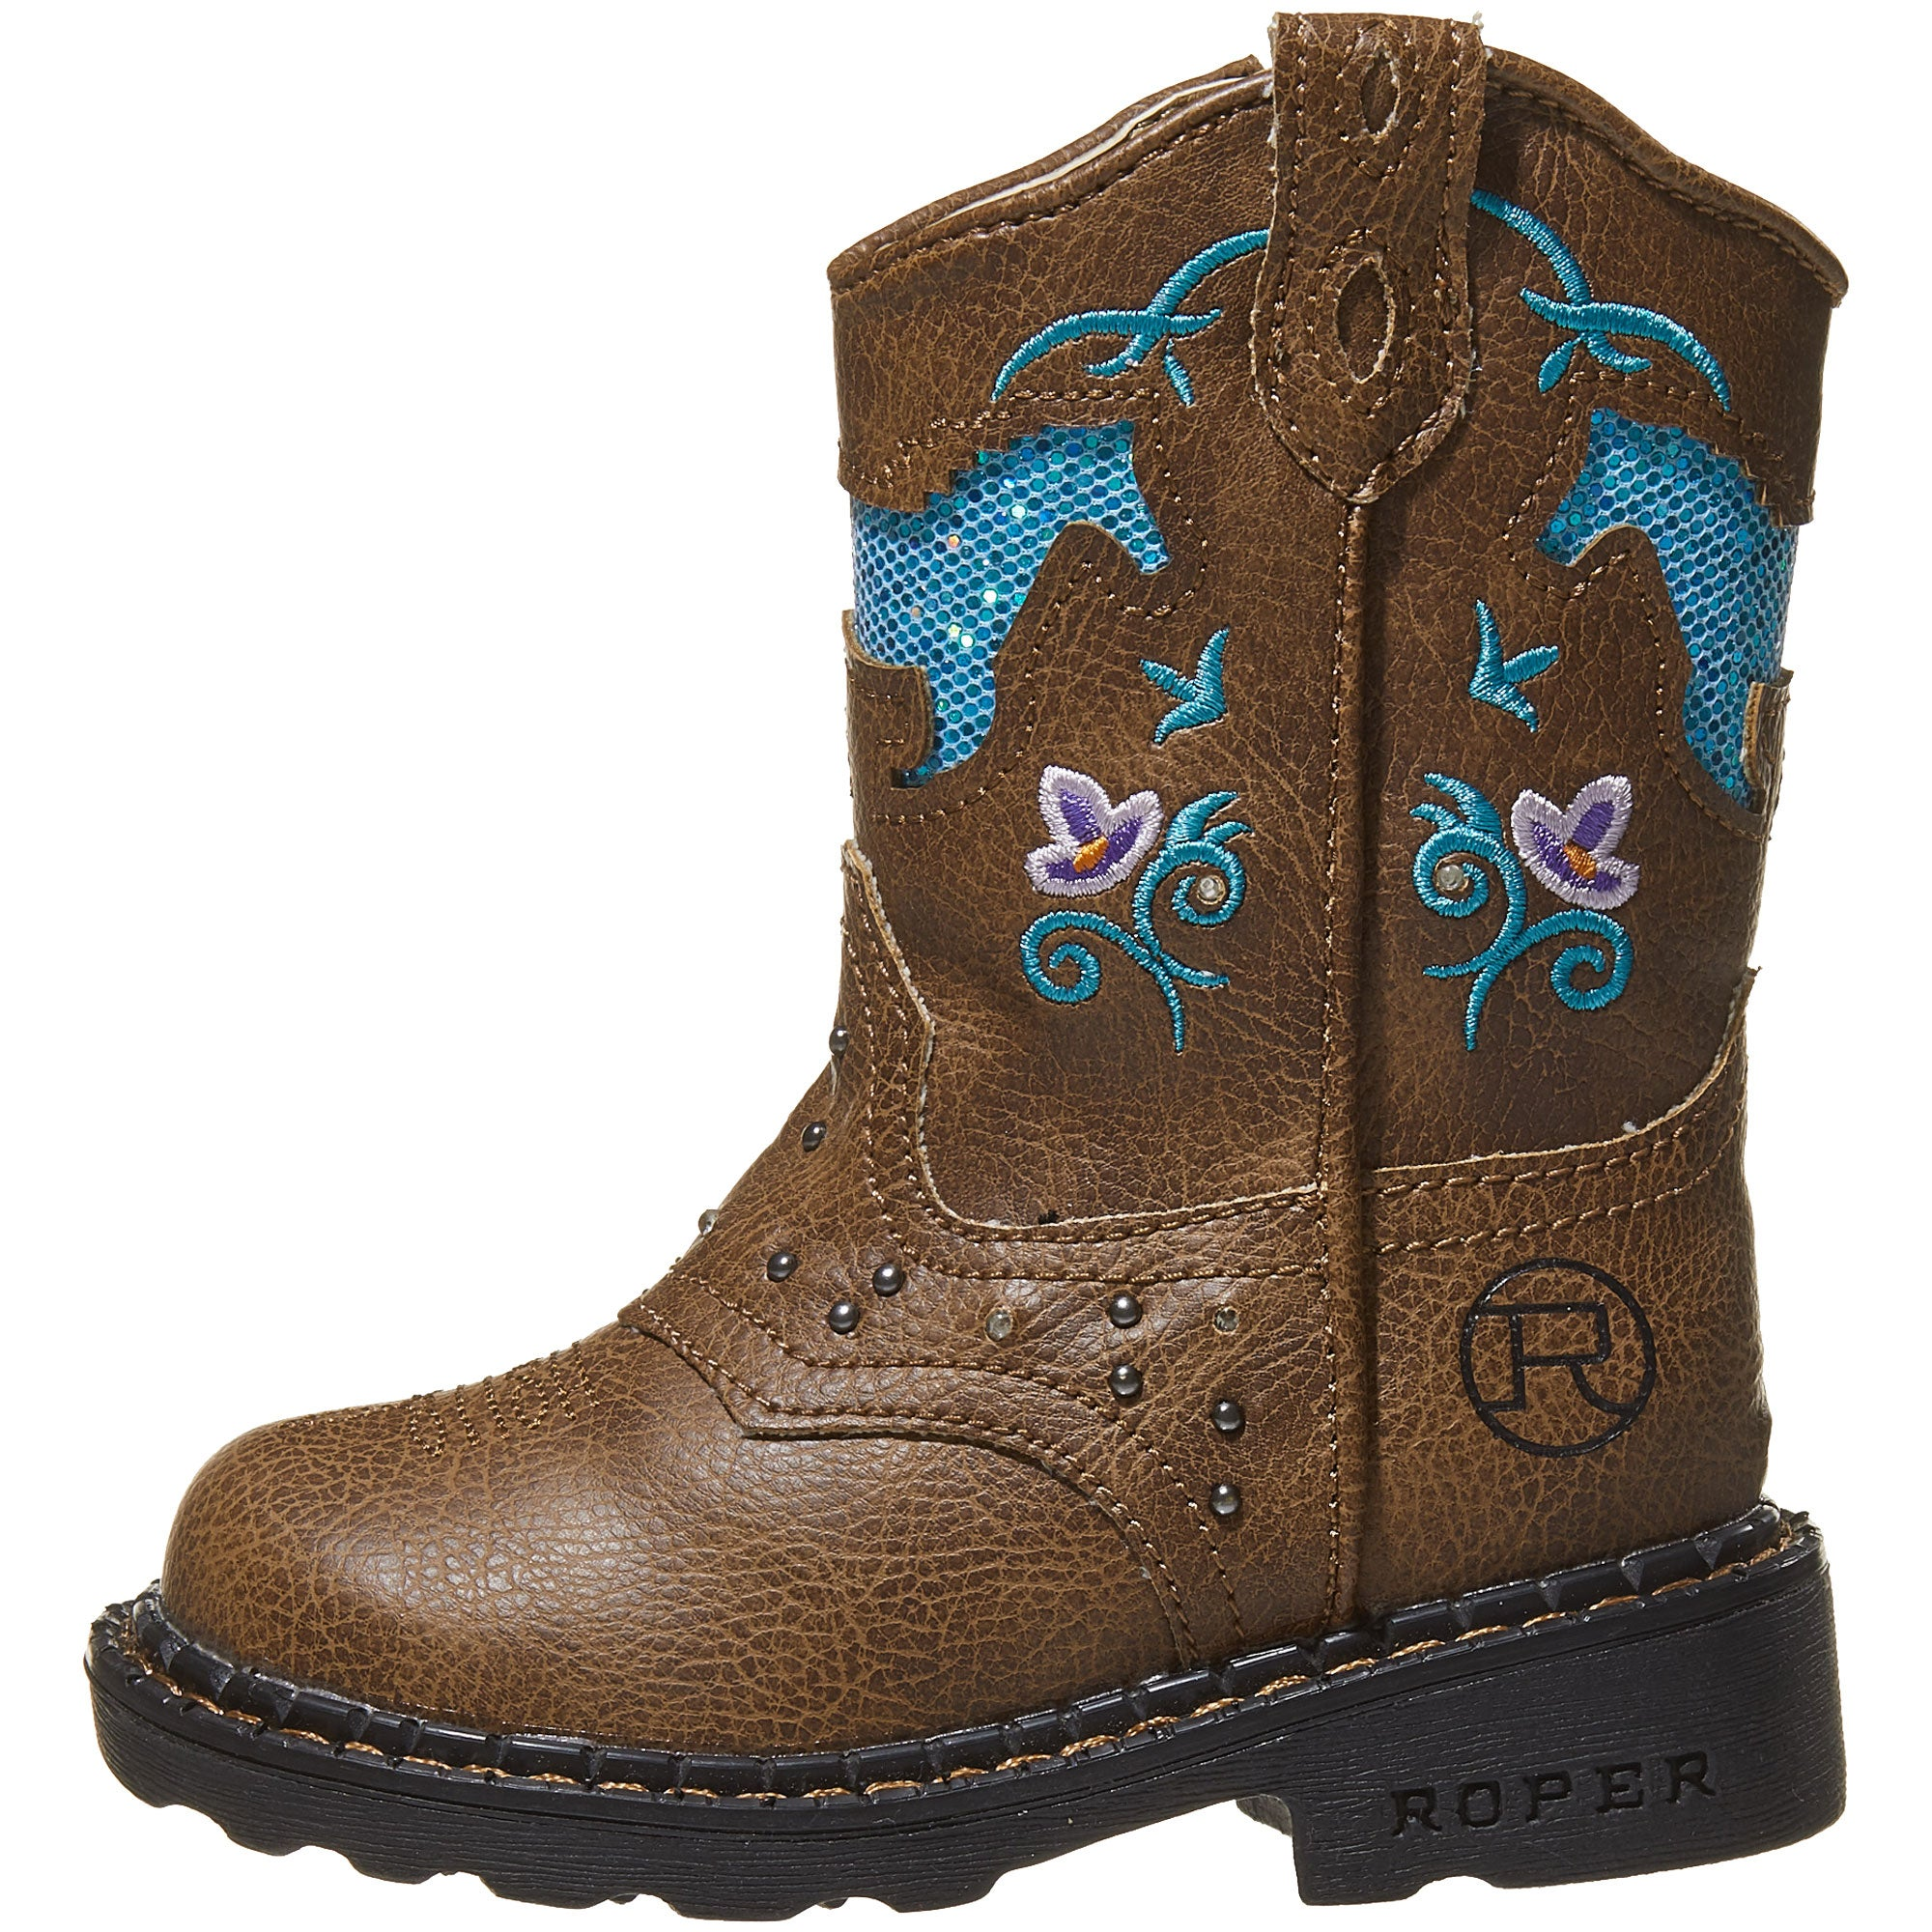 aeb1ff63f3b Roper Girl's Kids Horse Flowers Light Up Cowboy Boots - Riding Warehouse